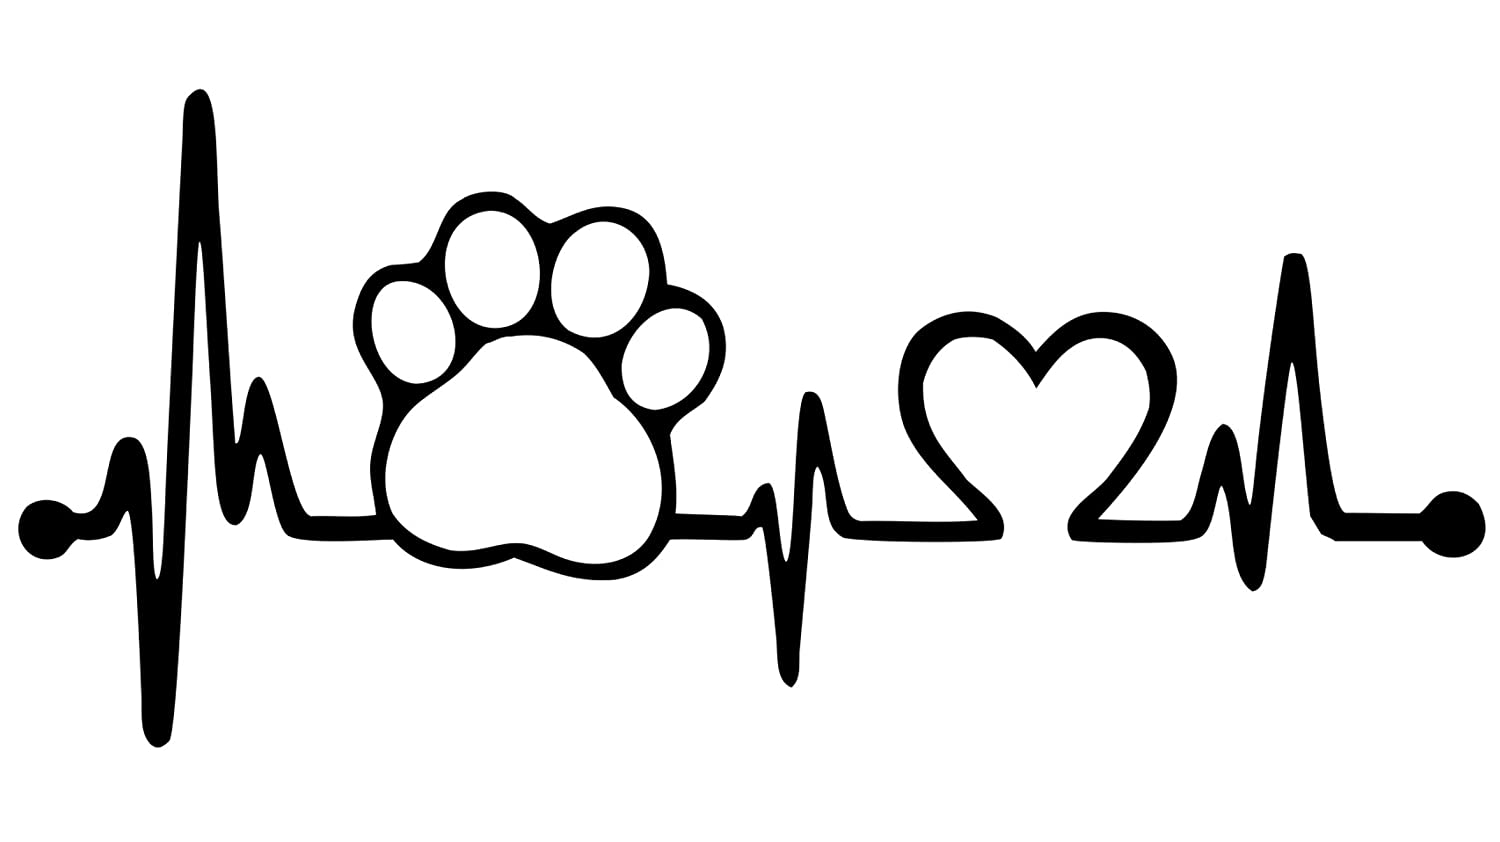 7.5 Bluegrass Decals Pet Paw Heartbeat Lifeline Dog Decal Sticker White, 7.5